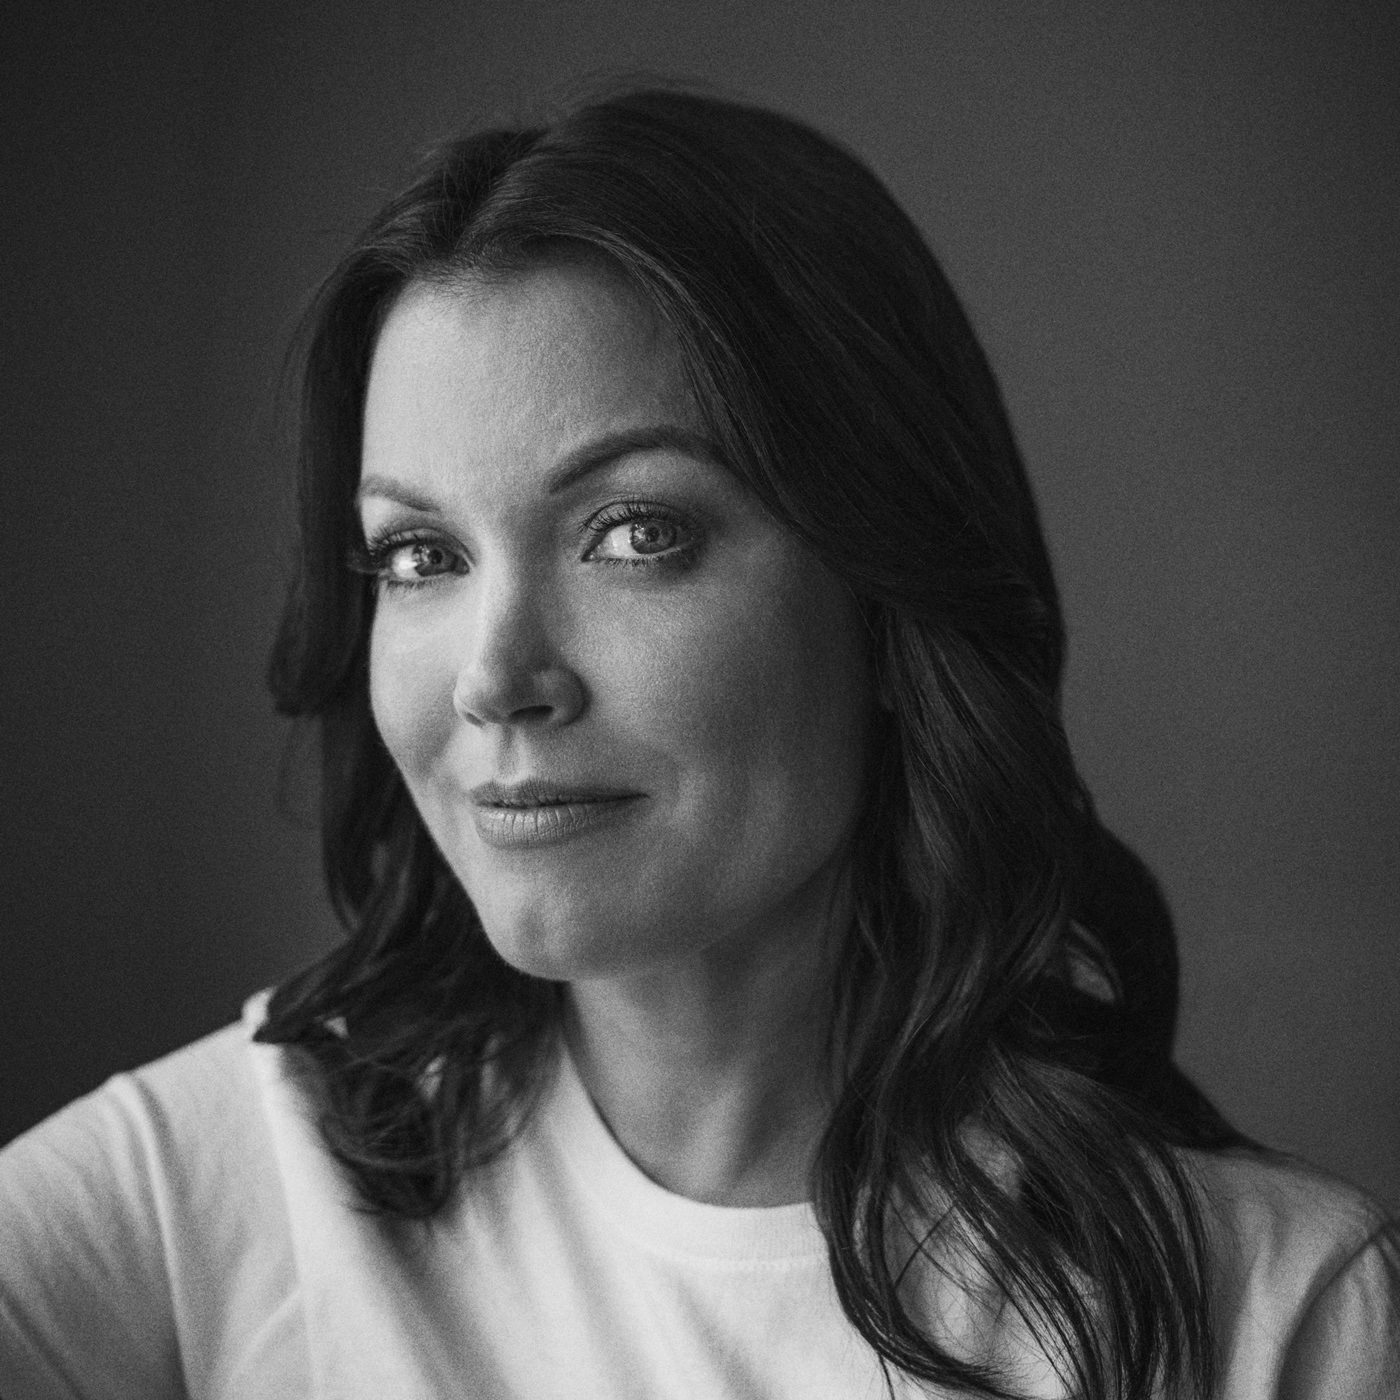 portrait of Bellamy Young